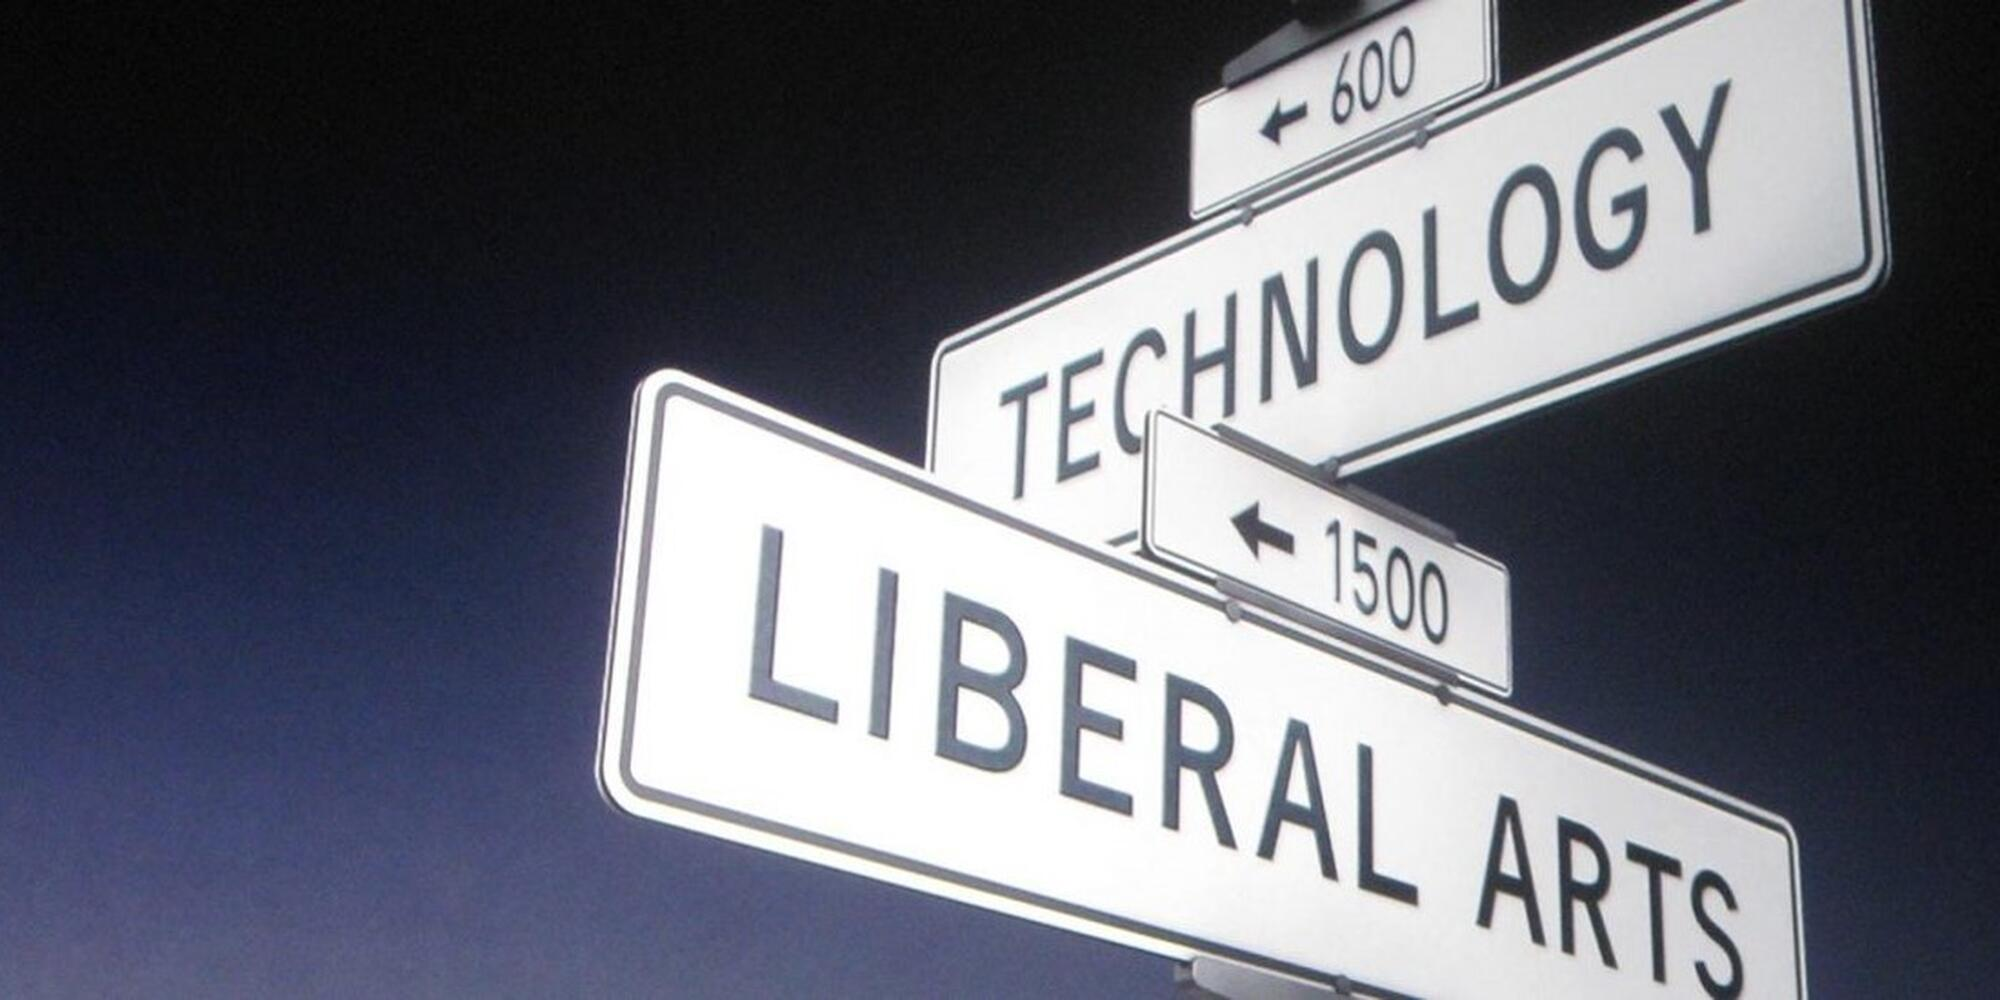 Technology Liberal Arts street sign